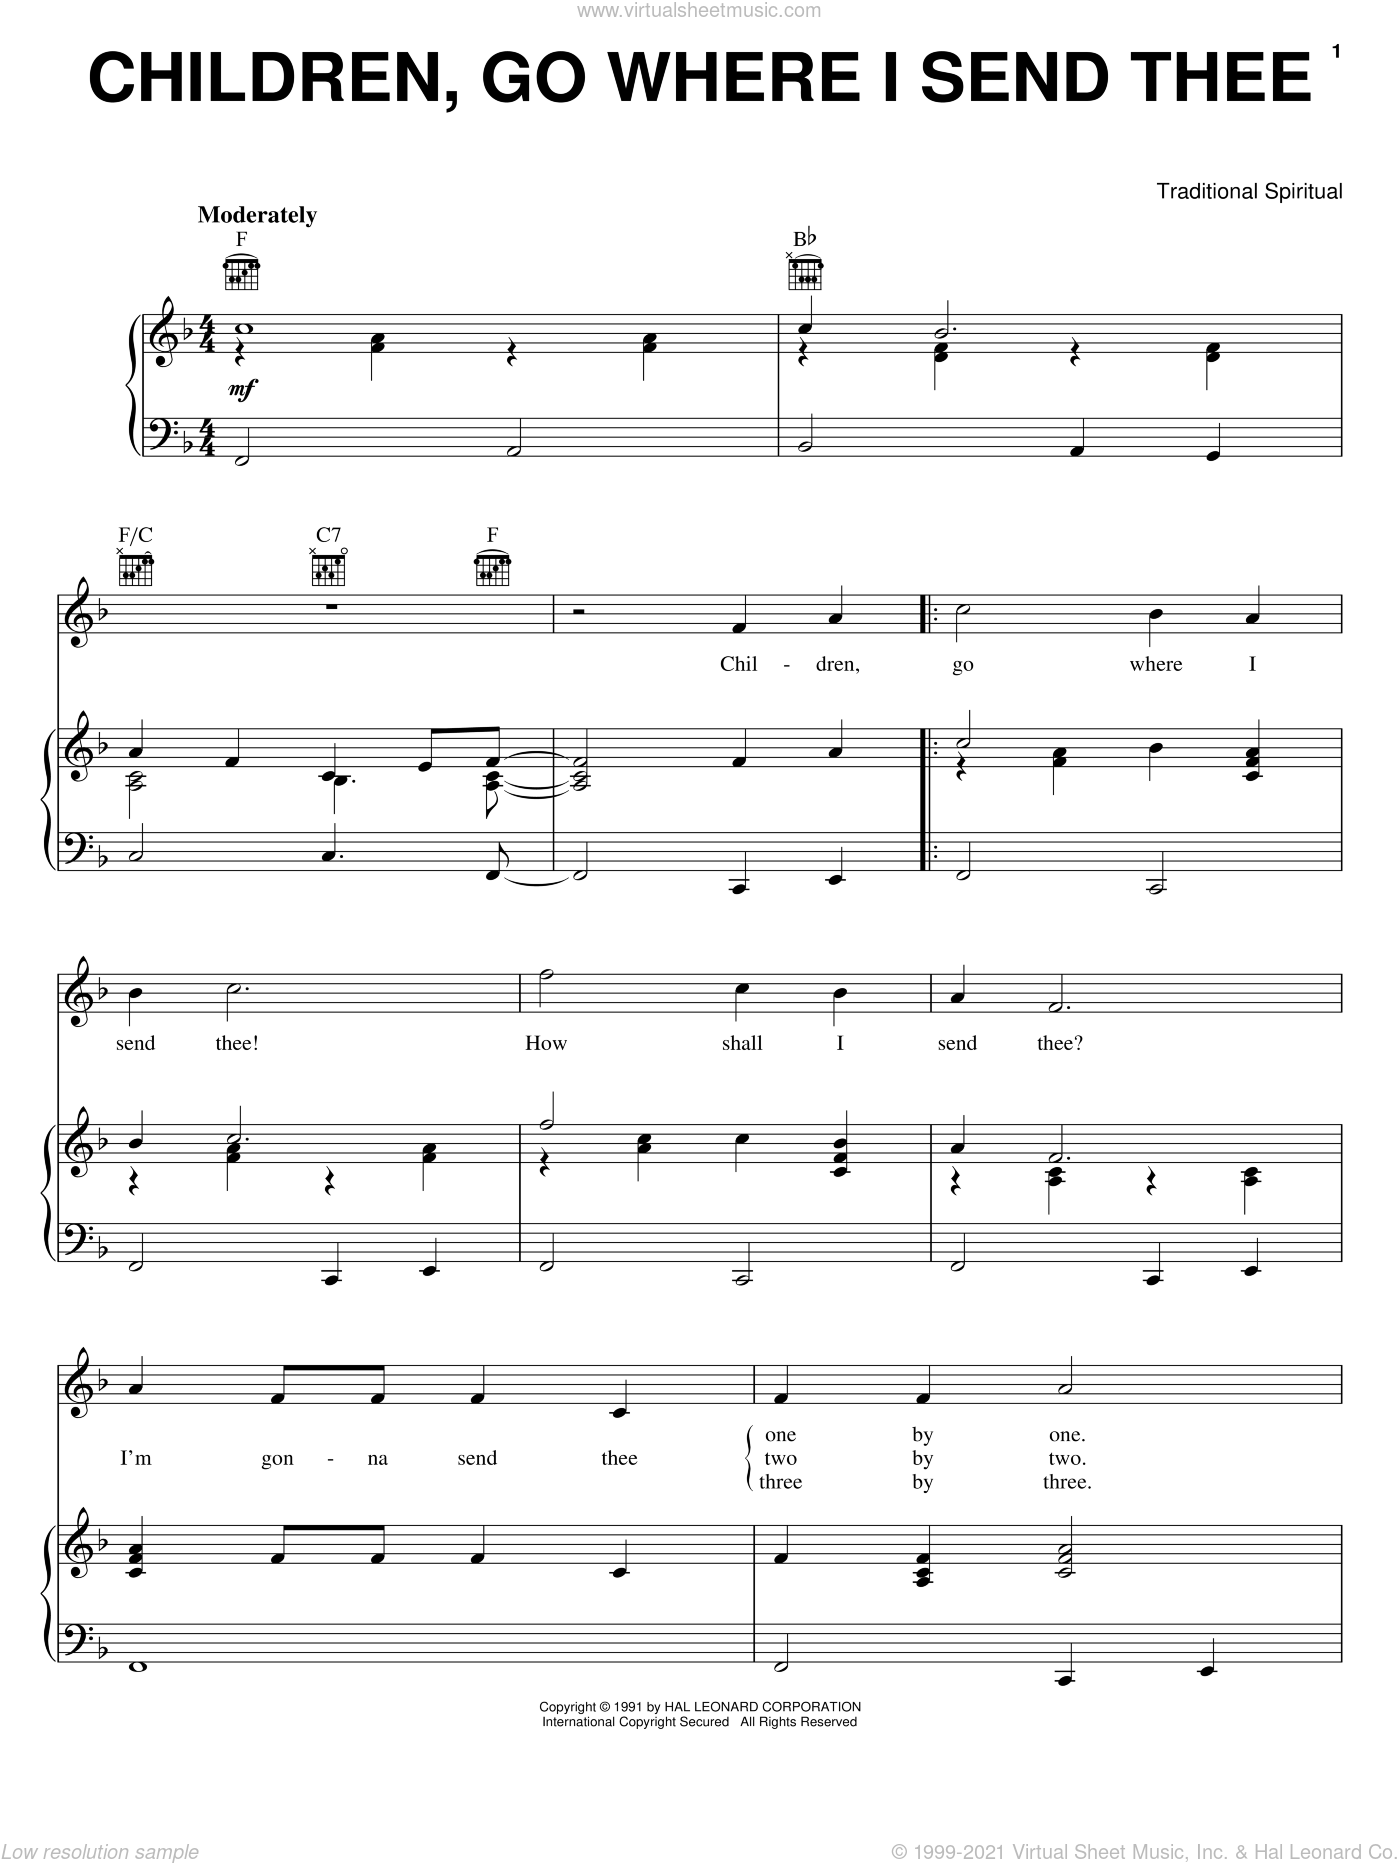 Children Go Where I Send Thee sheet music for voice, piano or guitar by Emily Crocker and Miscellaneous, intermediate skill level